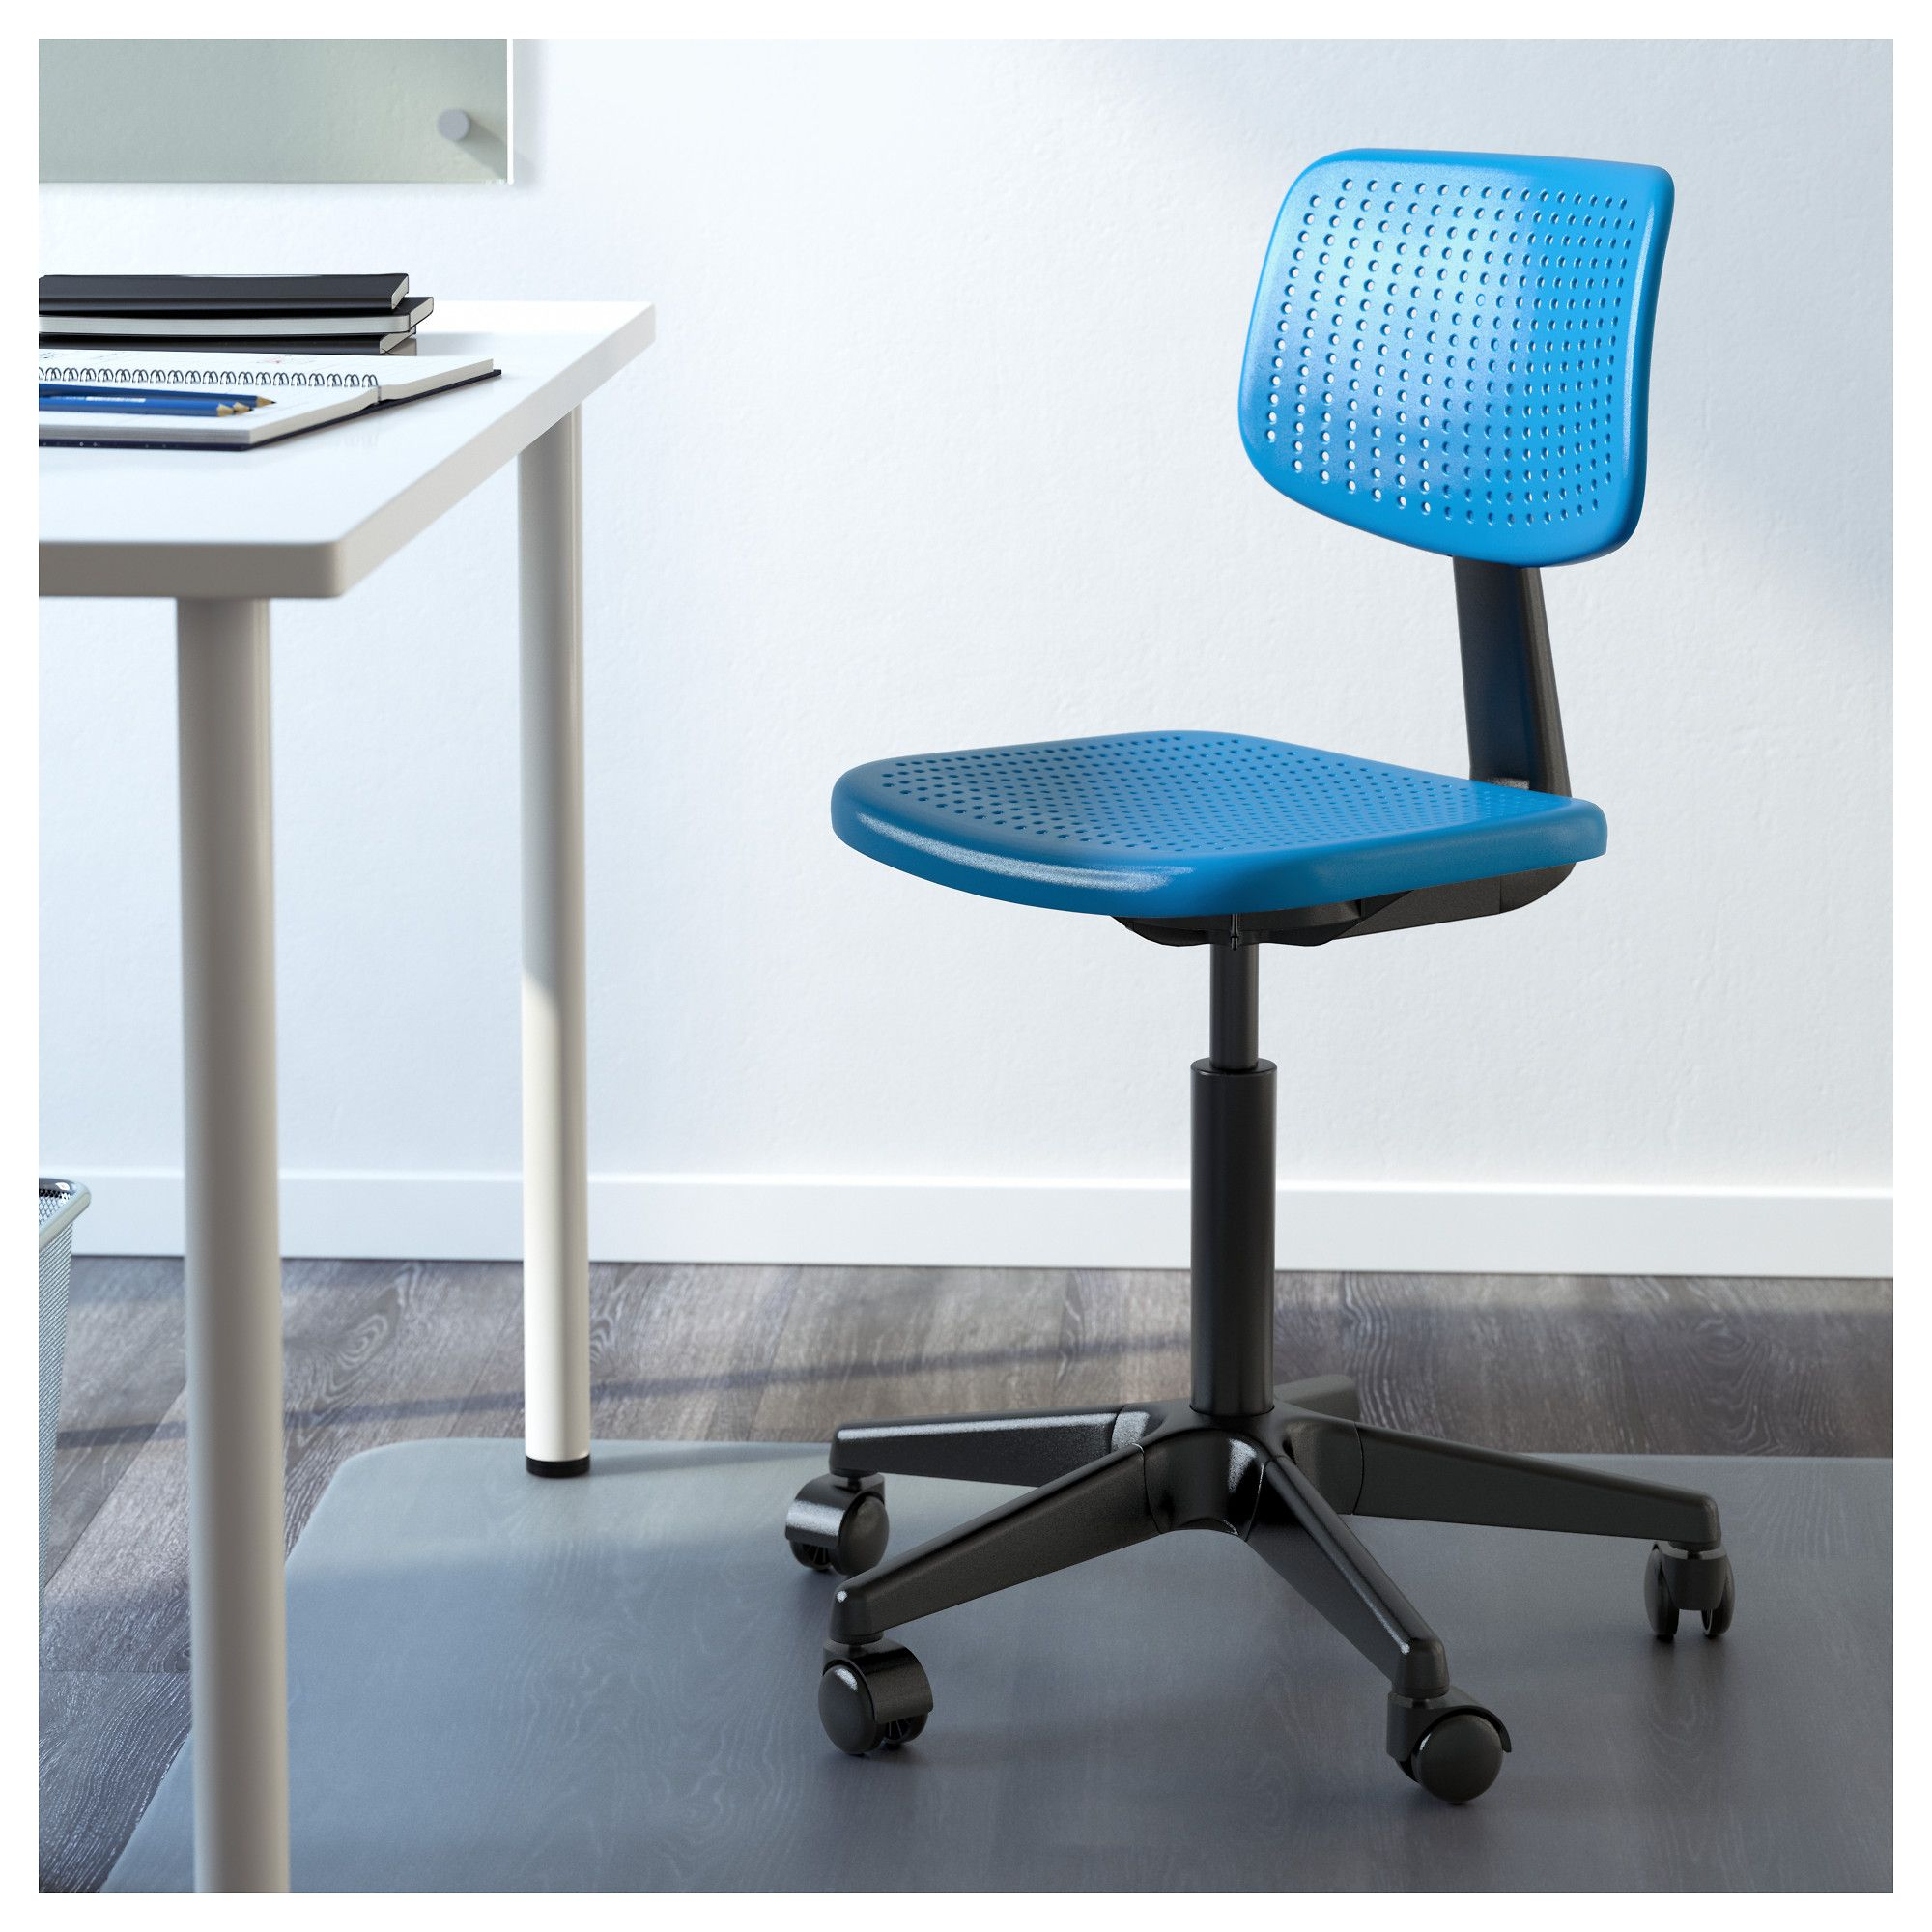 Shop For Furniture Home Accessories More Cool Desk Chairs